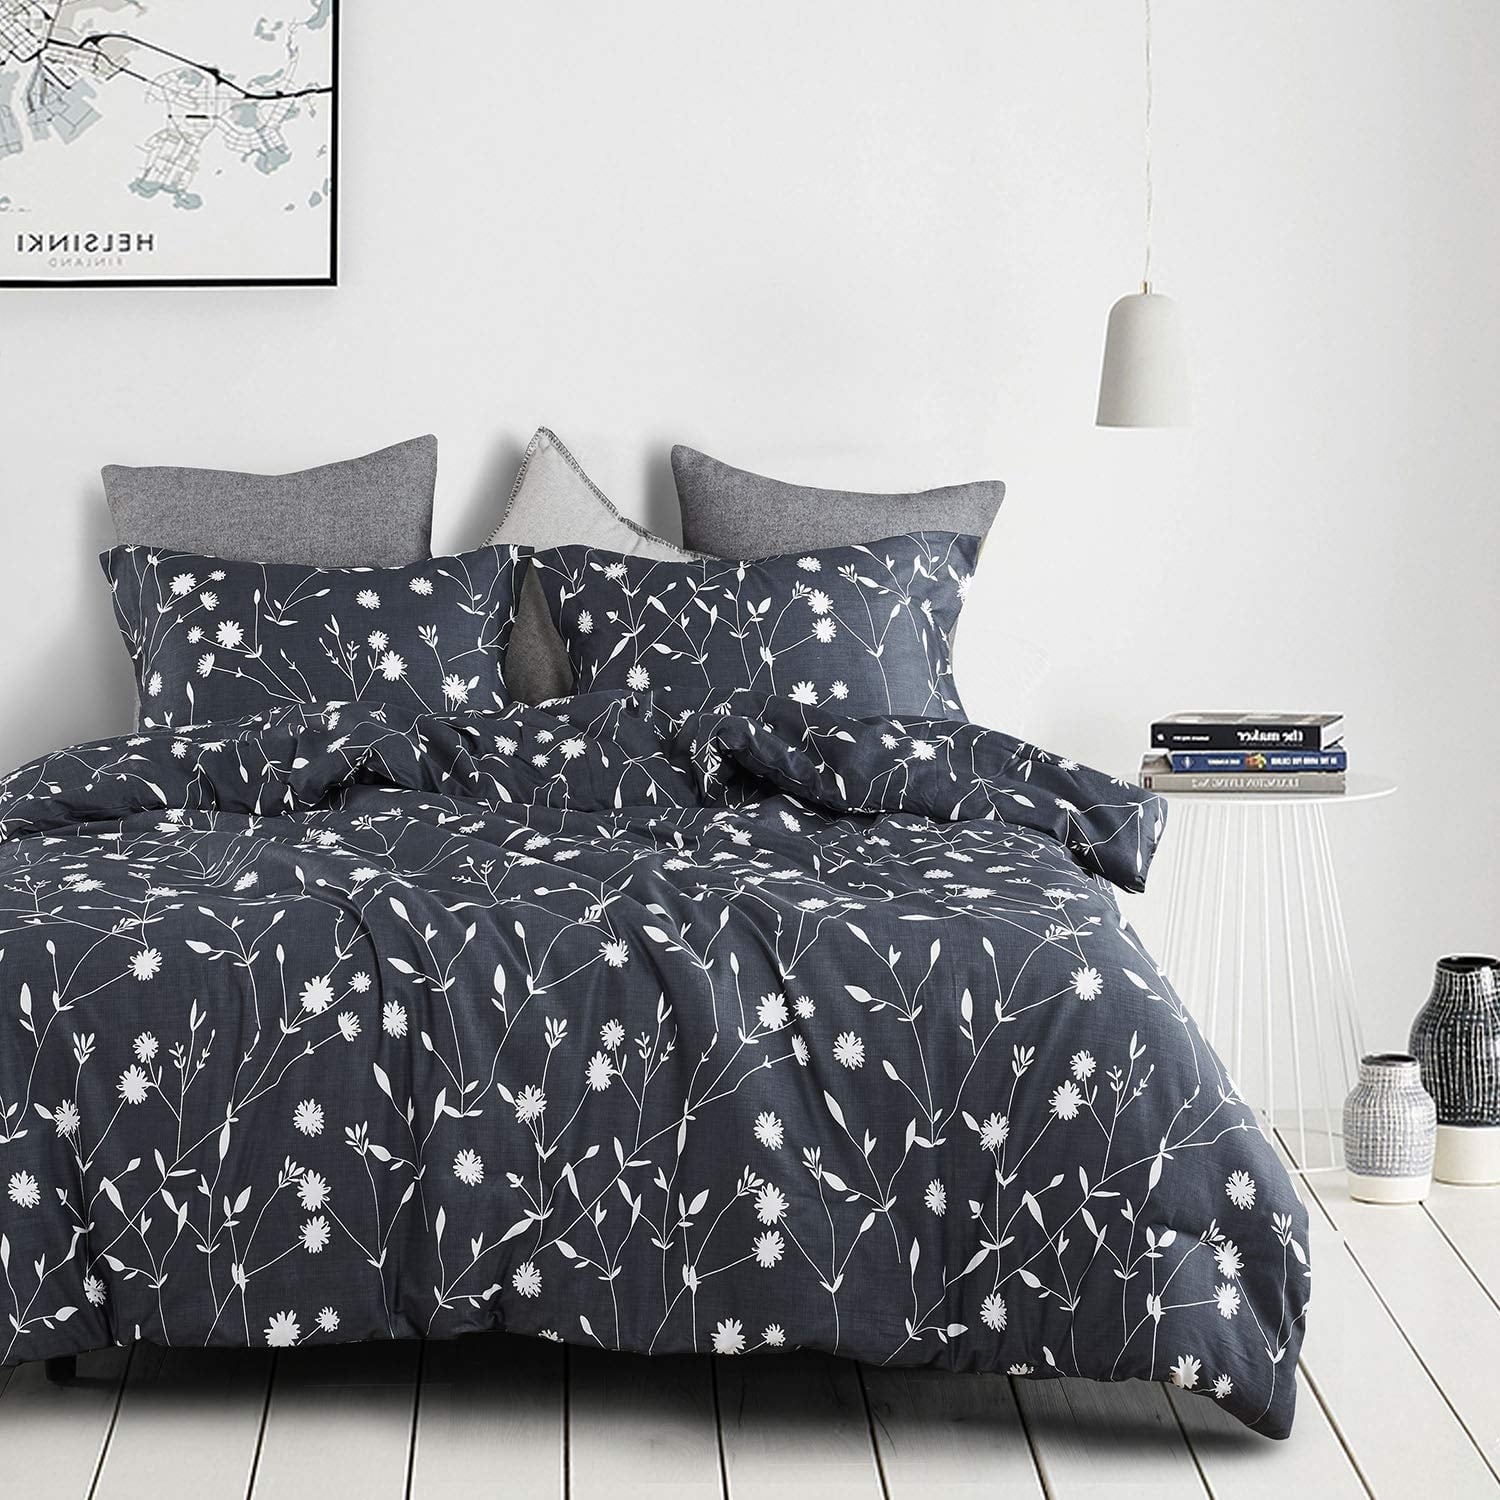 Best Comforters On Amazon Popsugar Home